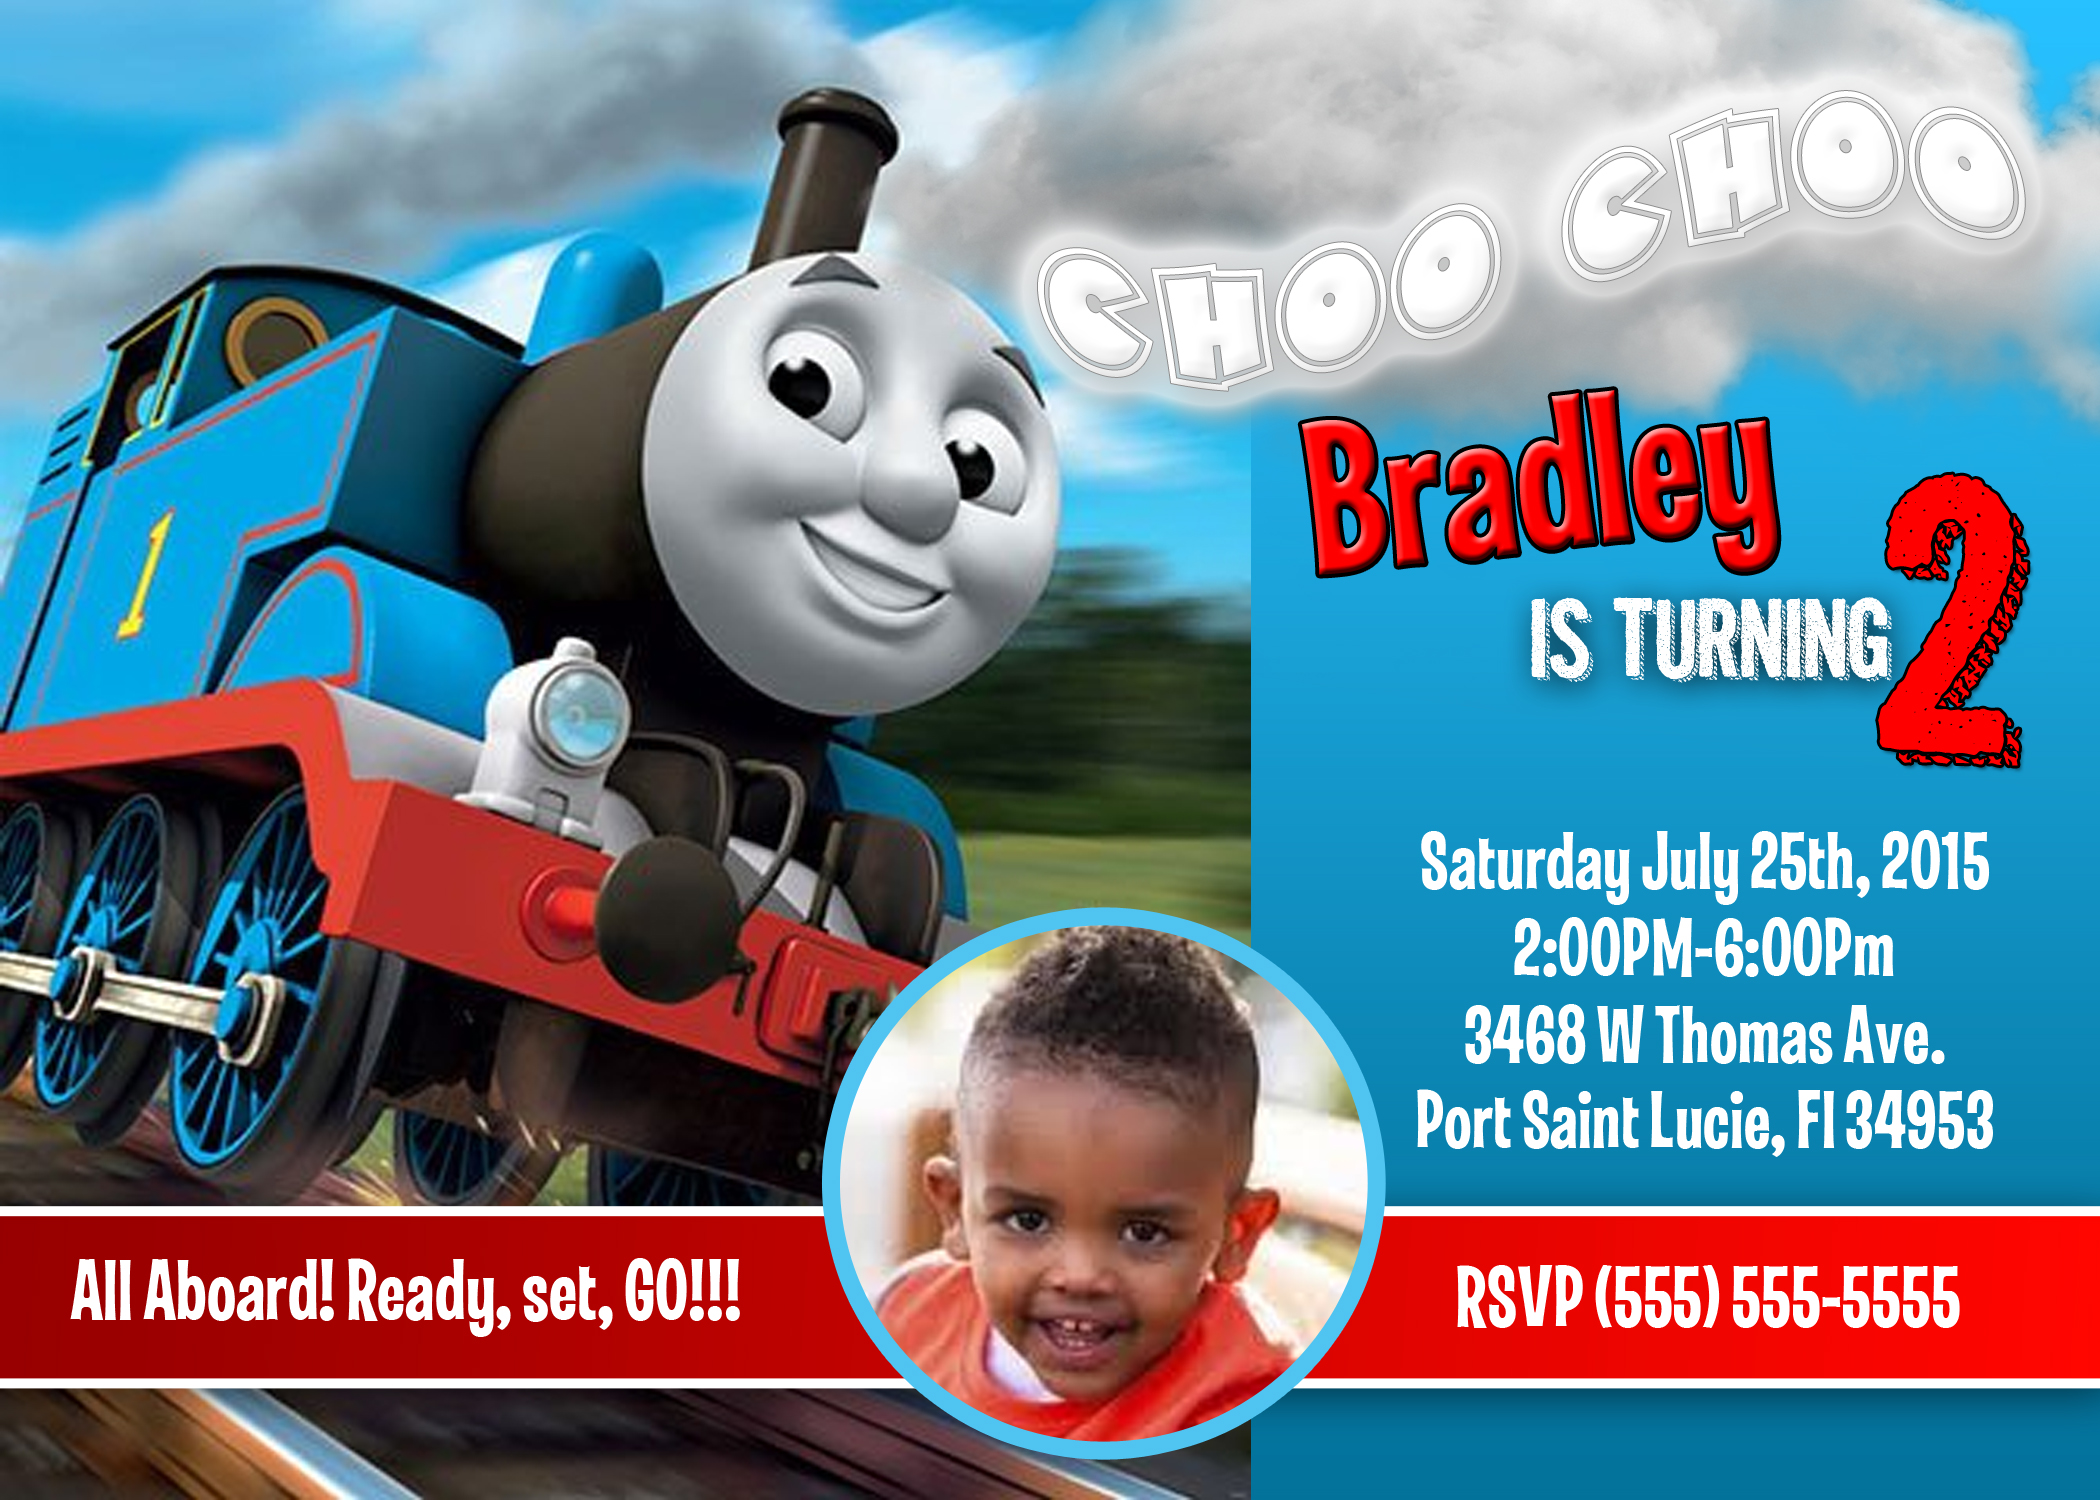 thomas and friends birthday invitation templates ; Thomas-the-train-birthday-invitations-to-inspire-you-how-to-create-the-birthday-invitation-with-the-best-way-1